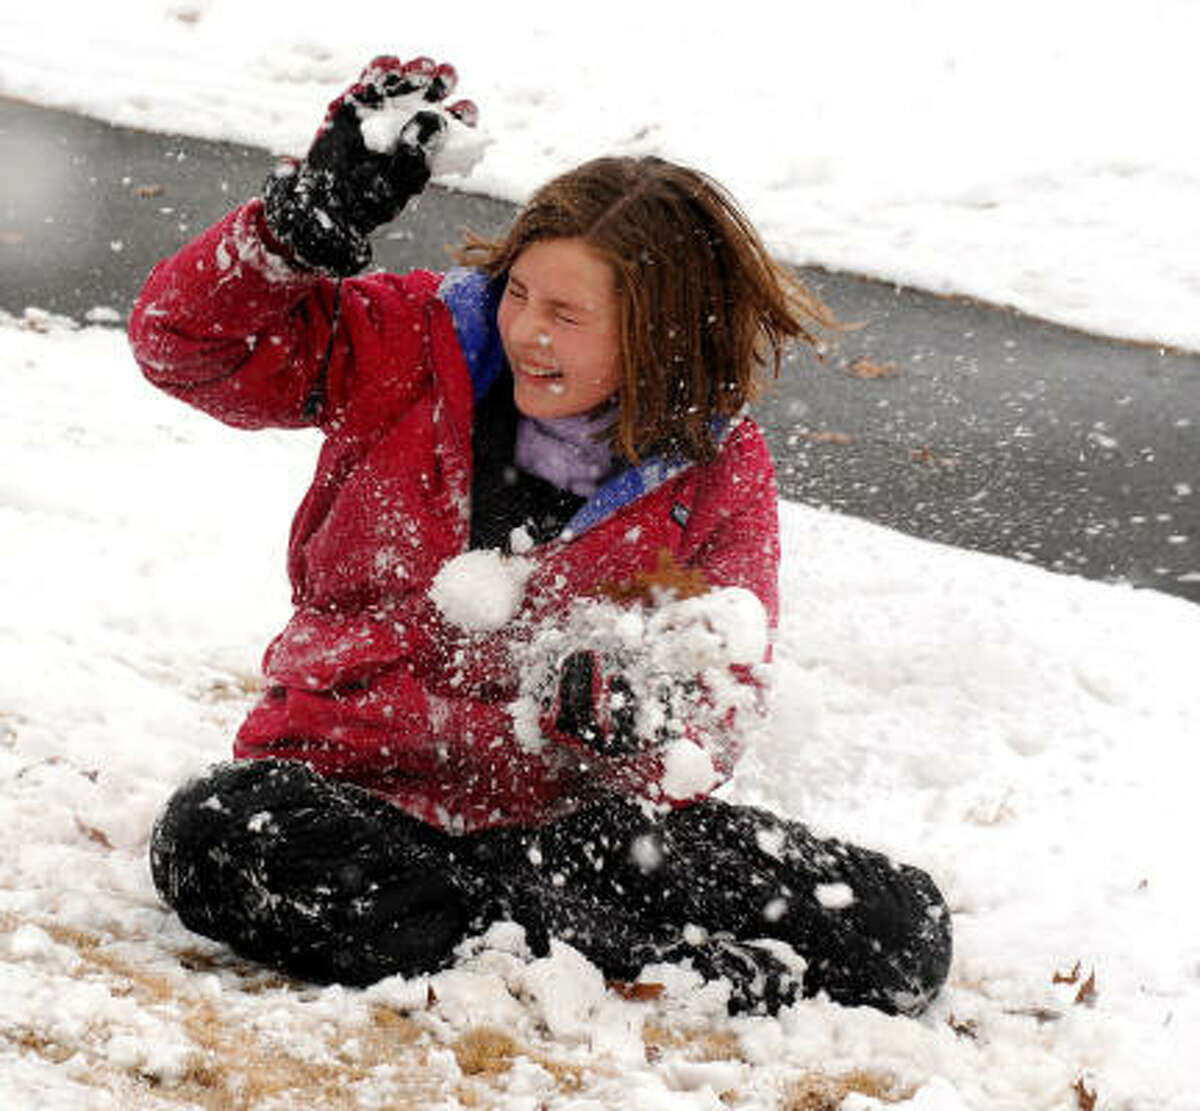 Alyssa Gibson winces as she takes a direct hit from a snowball thrown by her brother Nathan in a snowball fight at Warriors Path State Park in Kingsport, Tenn., Sunday.